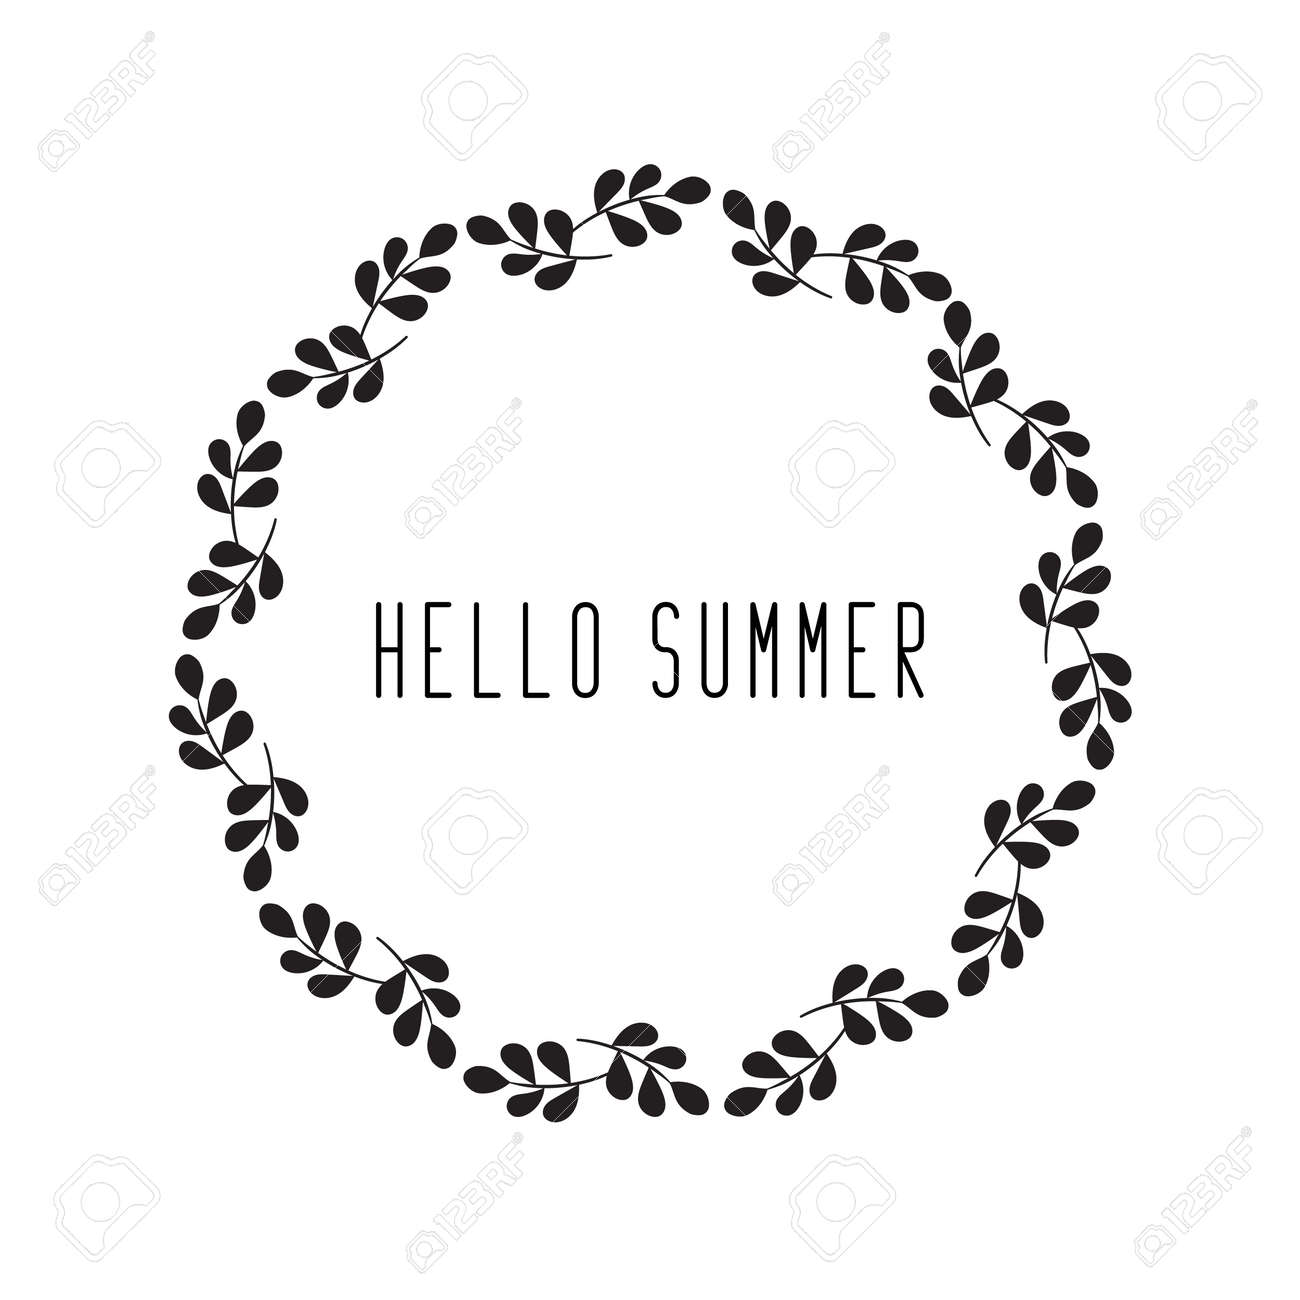 Round Floral Rustic Frame Simple Hello Summer Wreaths On White Background Stock Vector